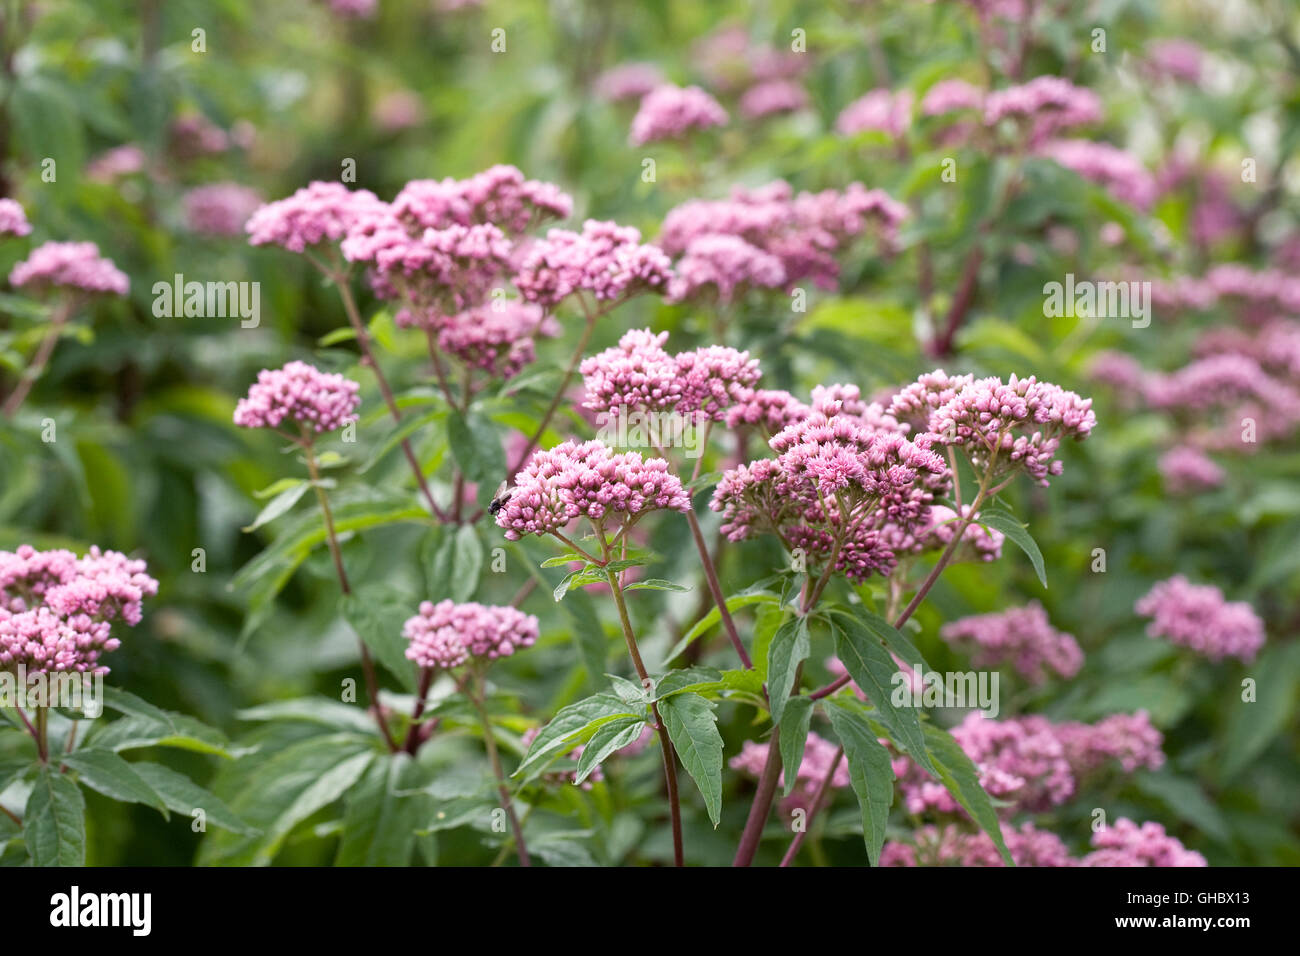 Eupatorium maculatum 'Atropurpureum Group'. Joe Pye weed flower. - Stock Image